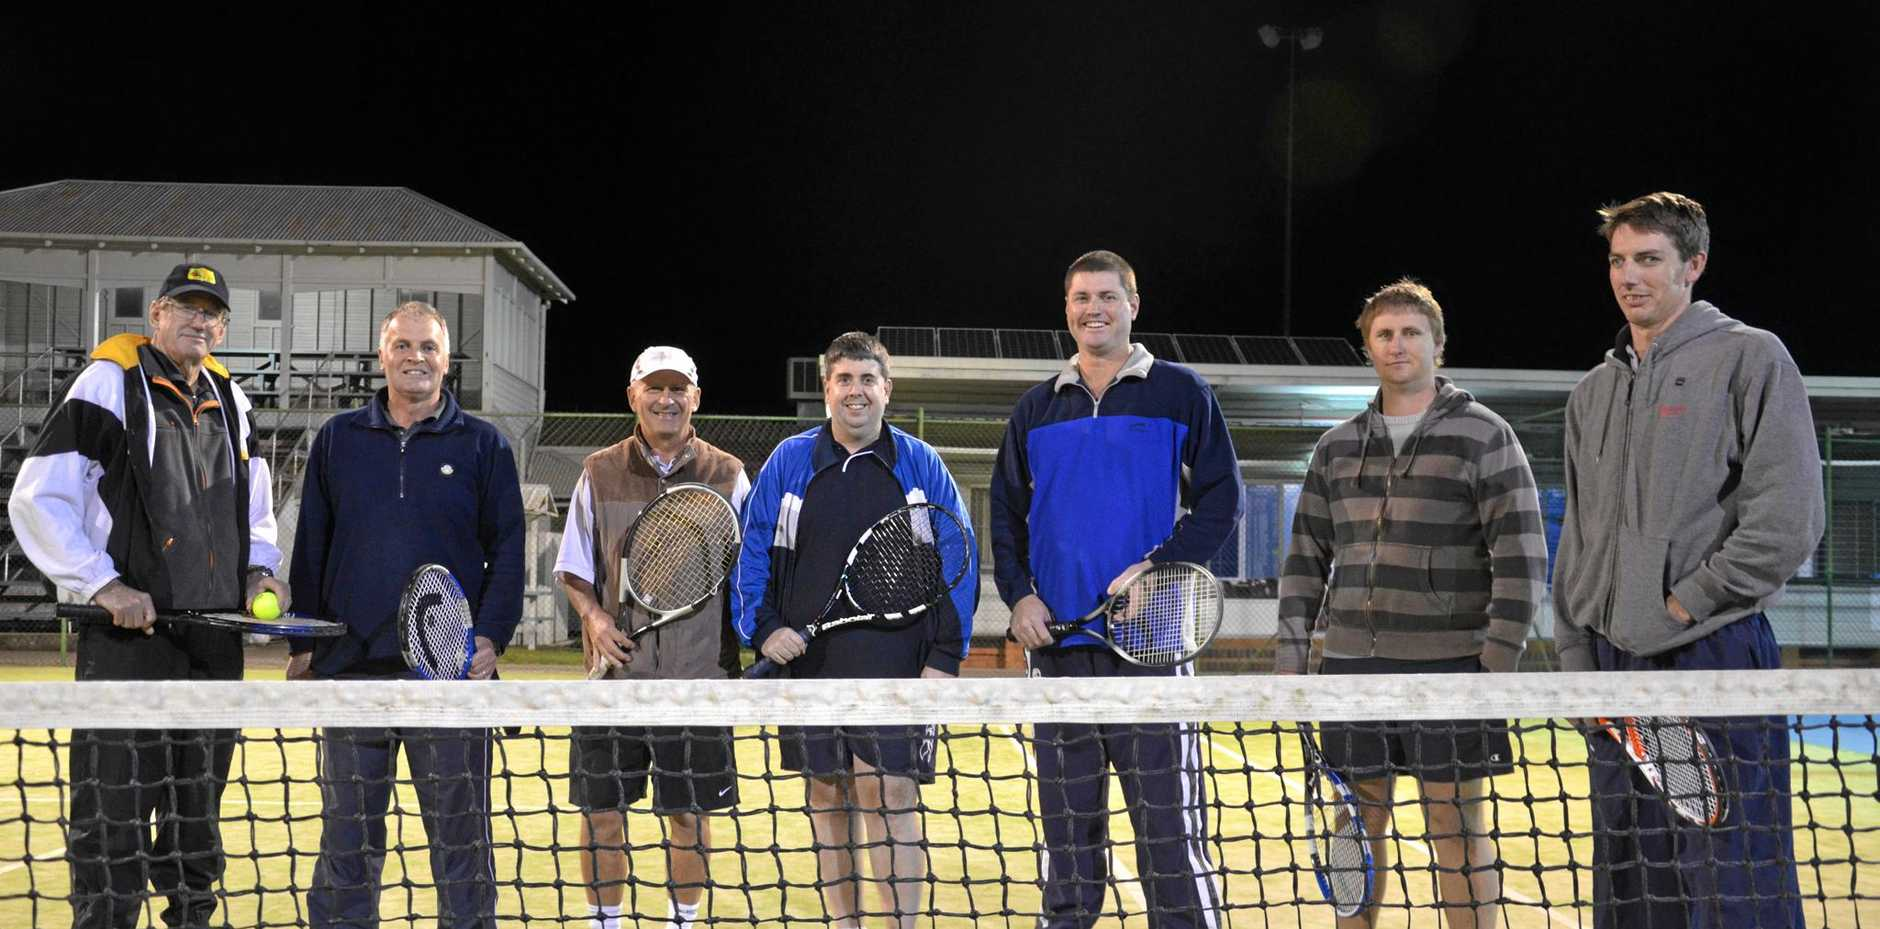 Terry Butler, Kevin Lind, Rob Quinton, Nathan Costello, Glen Hoffman, Daniel Doherty and Matthew Sharp at the Warwick Tennis Club.